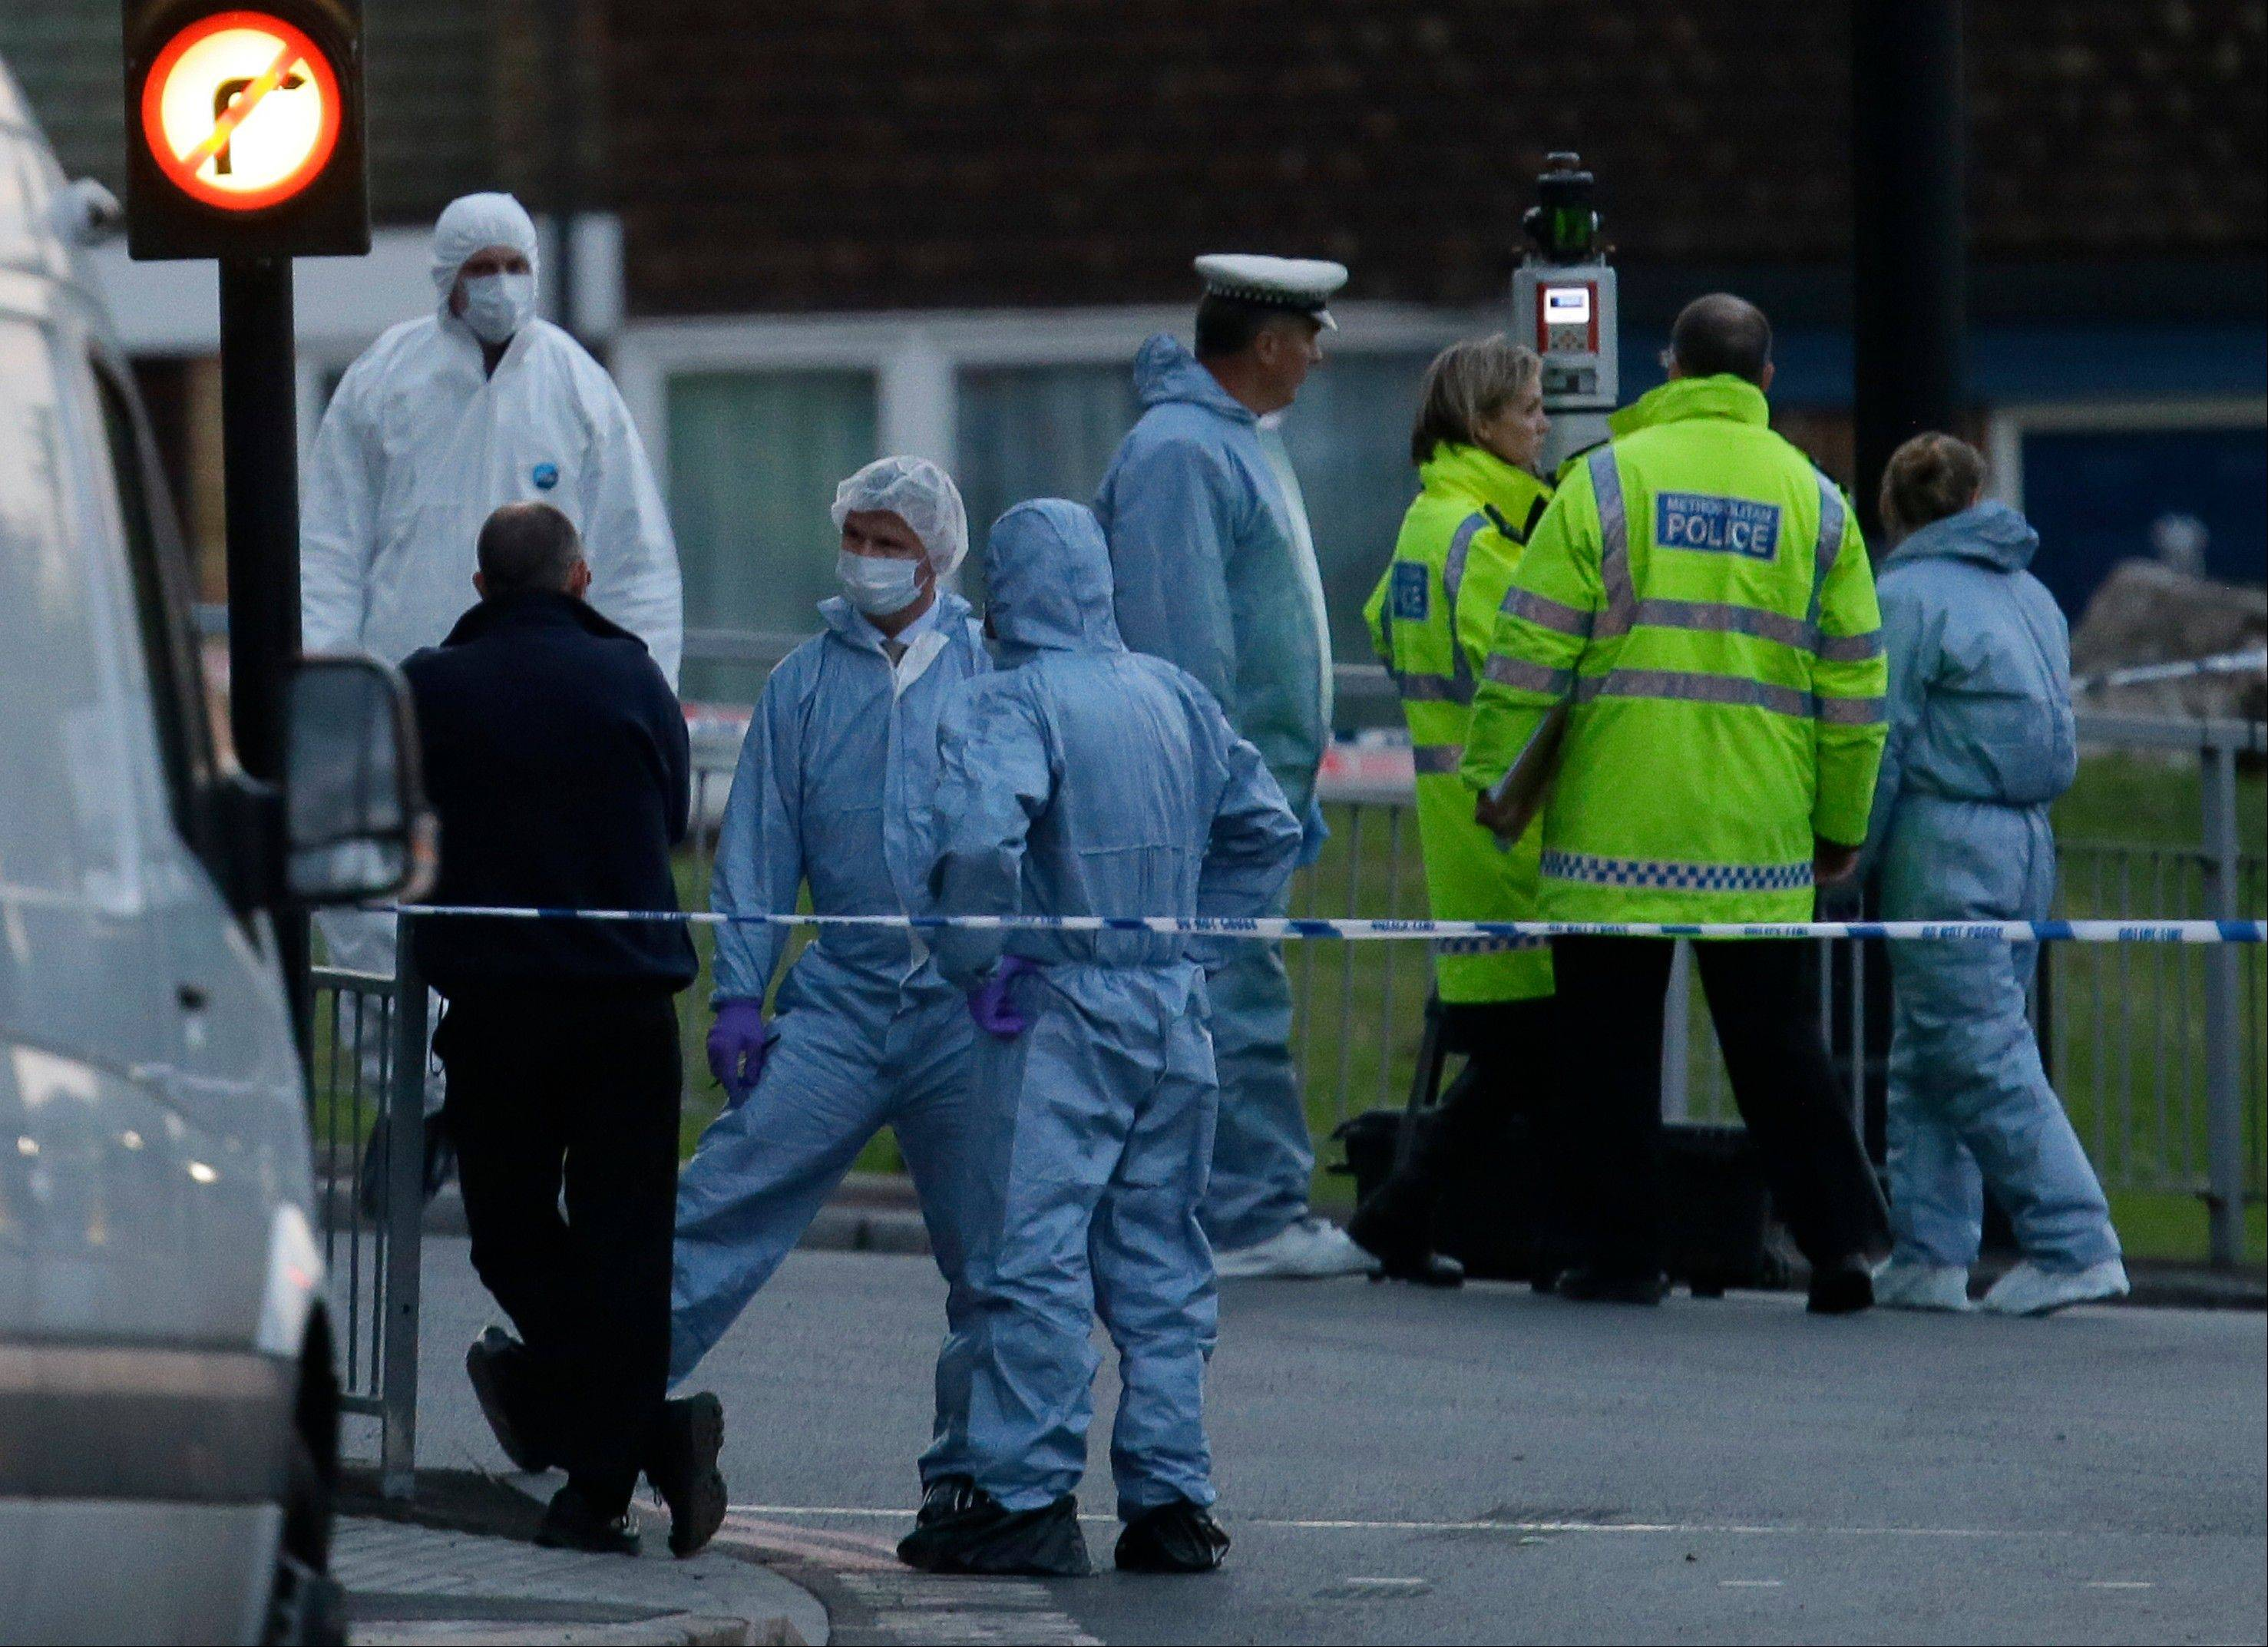 Police and forensic officers near the scene of an attack which has left one man confirmed dead and two people injured in London Wednesday.